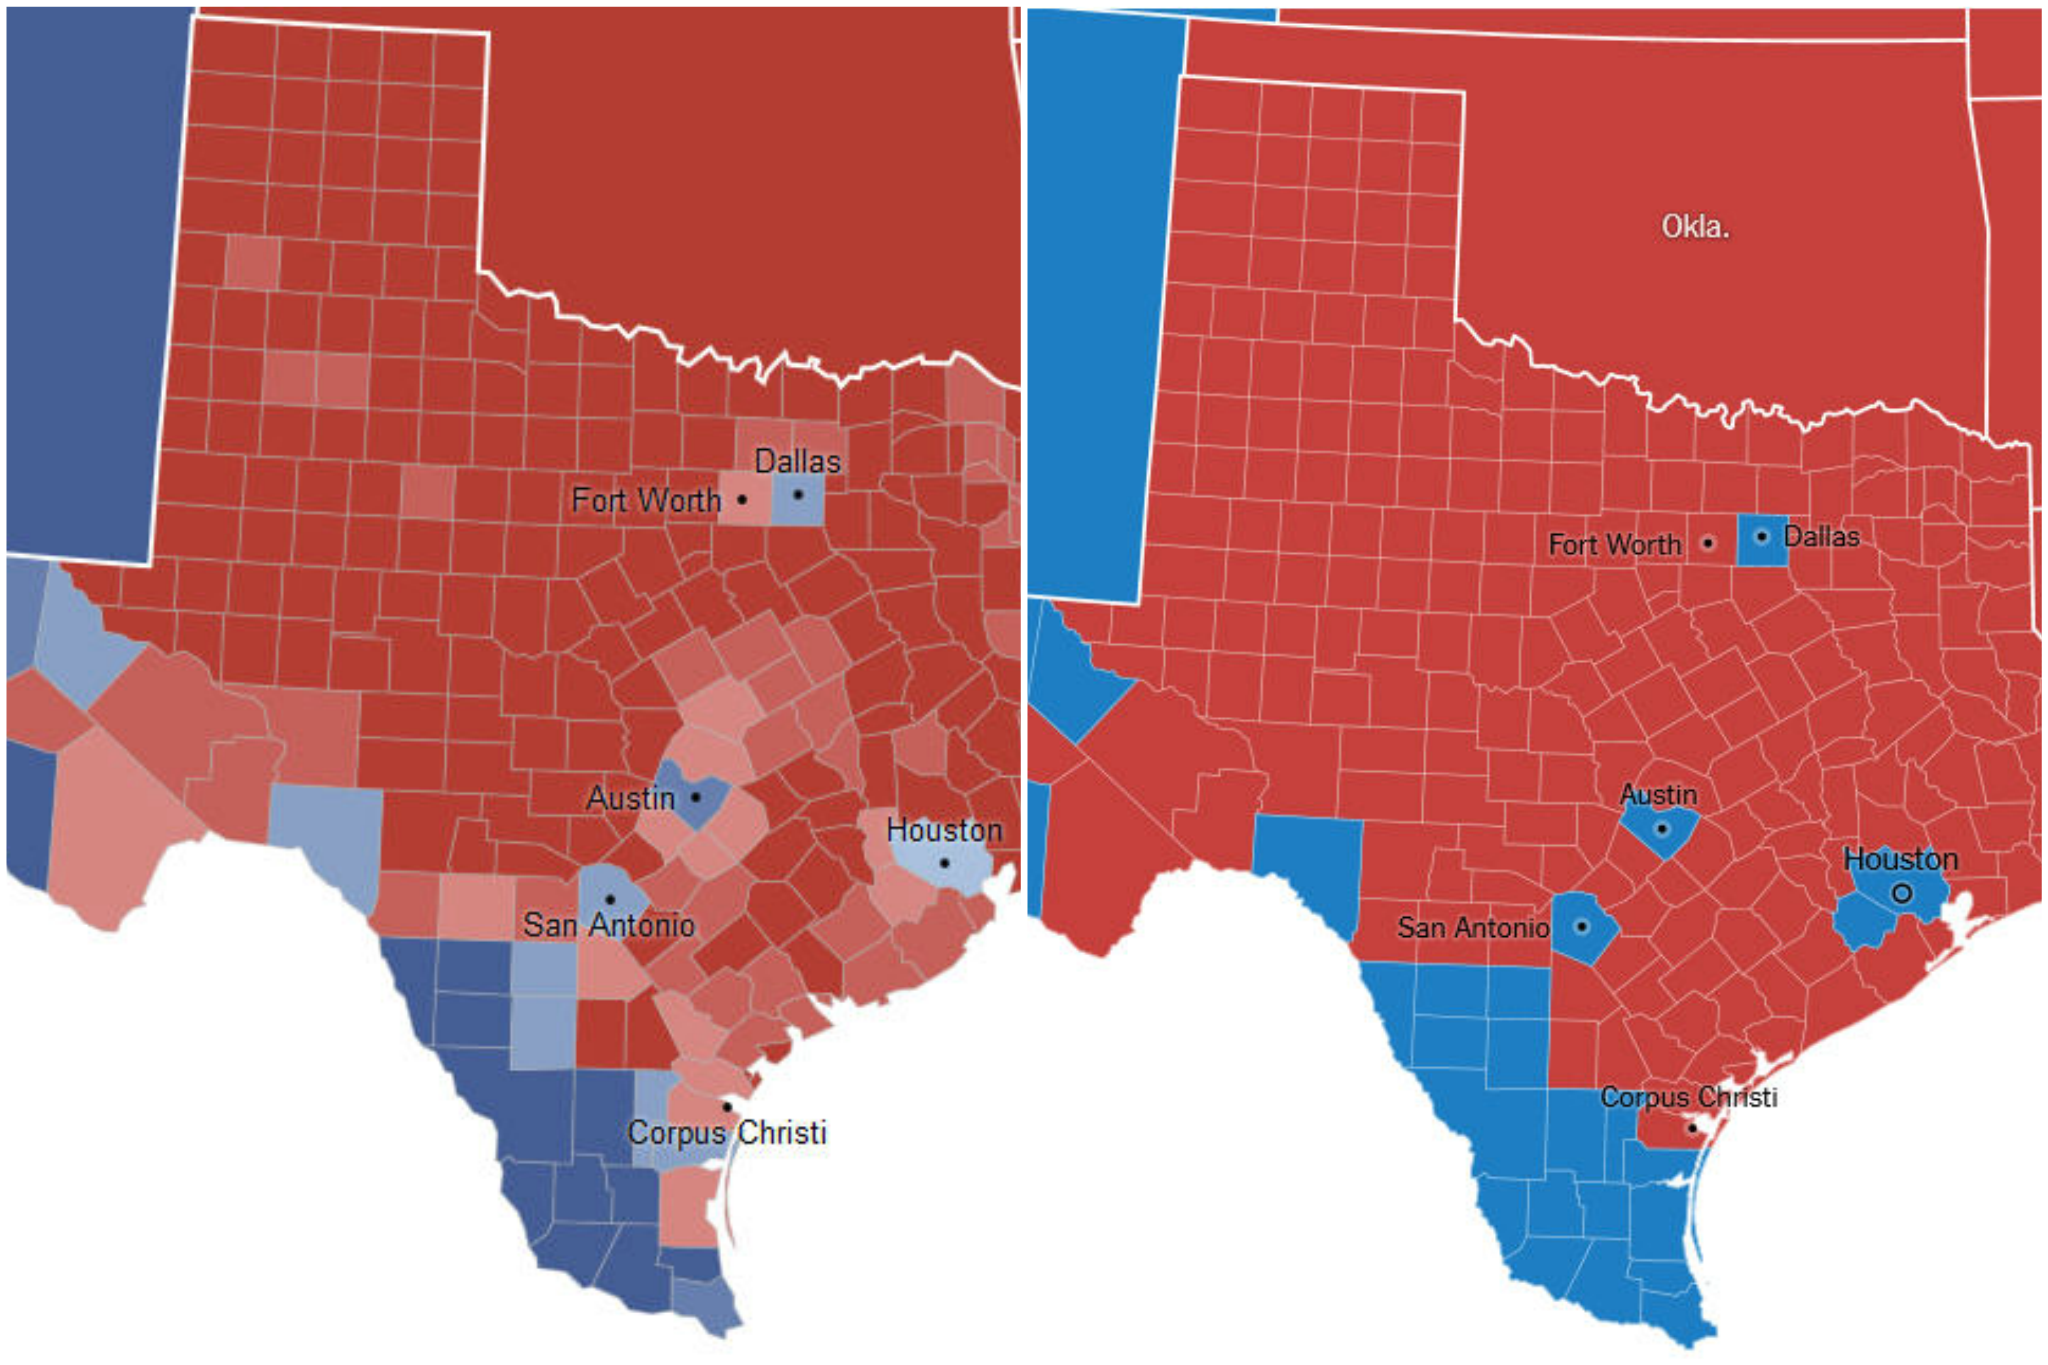 Texas Election Map Map comparison: Texas' 2012 election results versus 2016 election